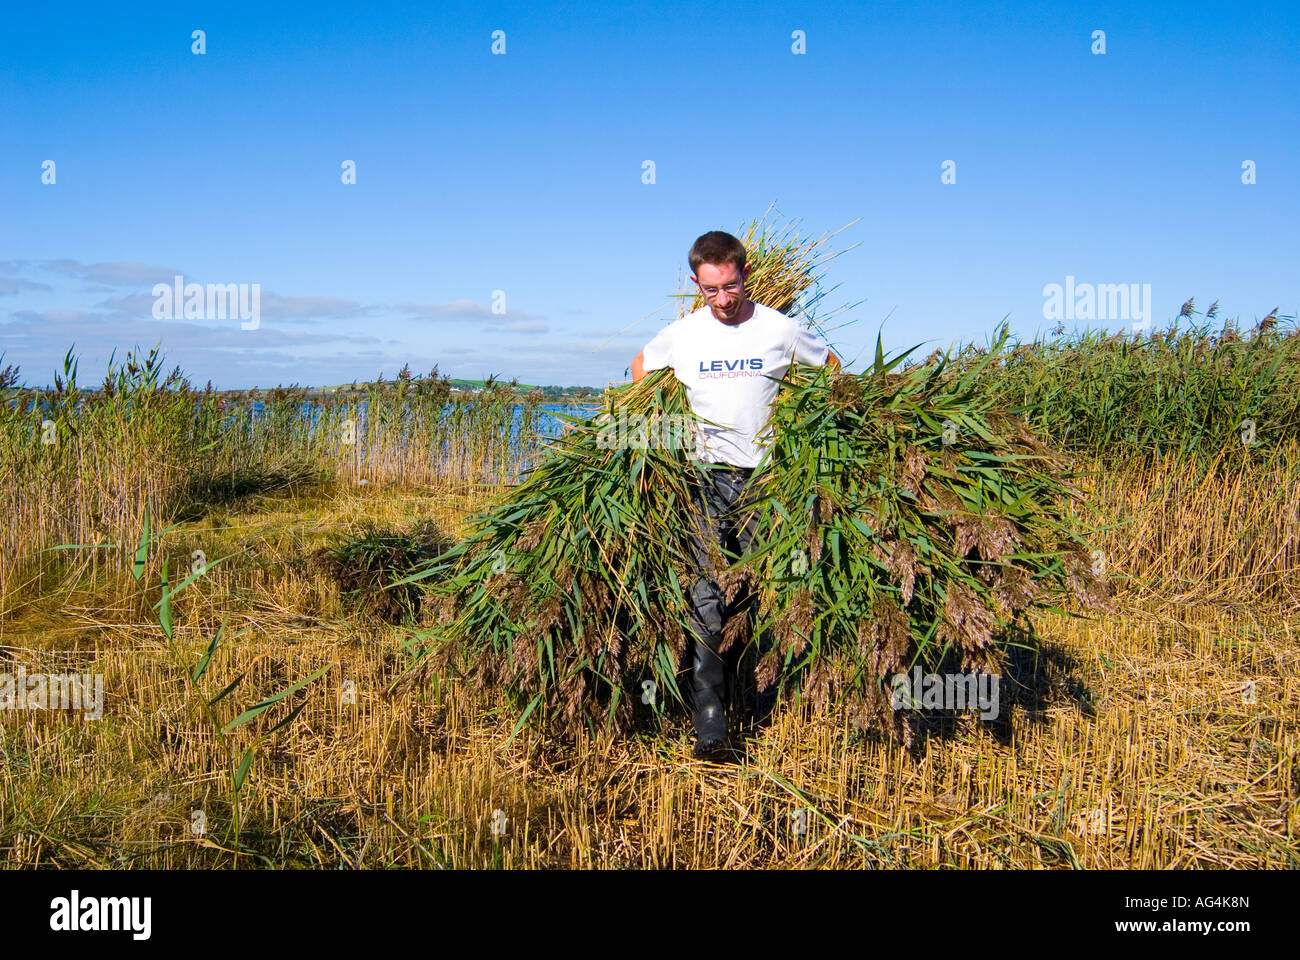 County Donegal Ireland Collecting cut reeds to be used in thatching a roof - Stock Image